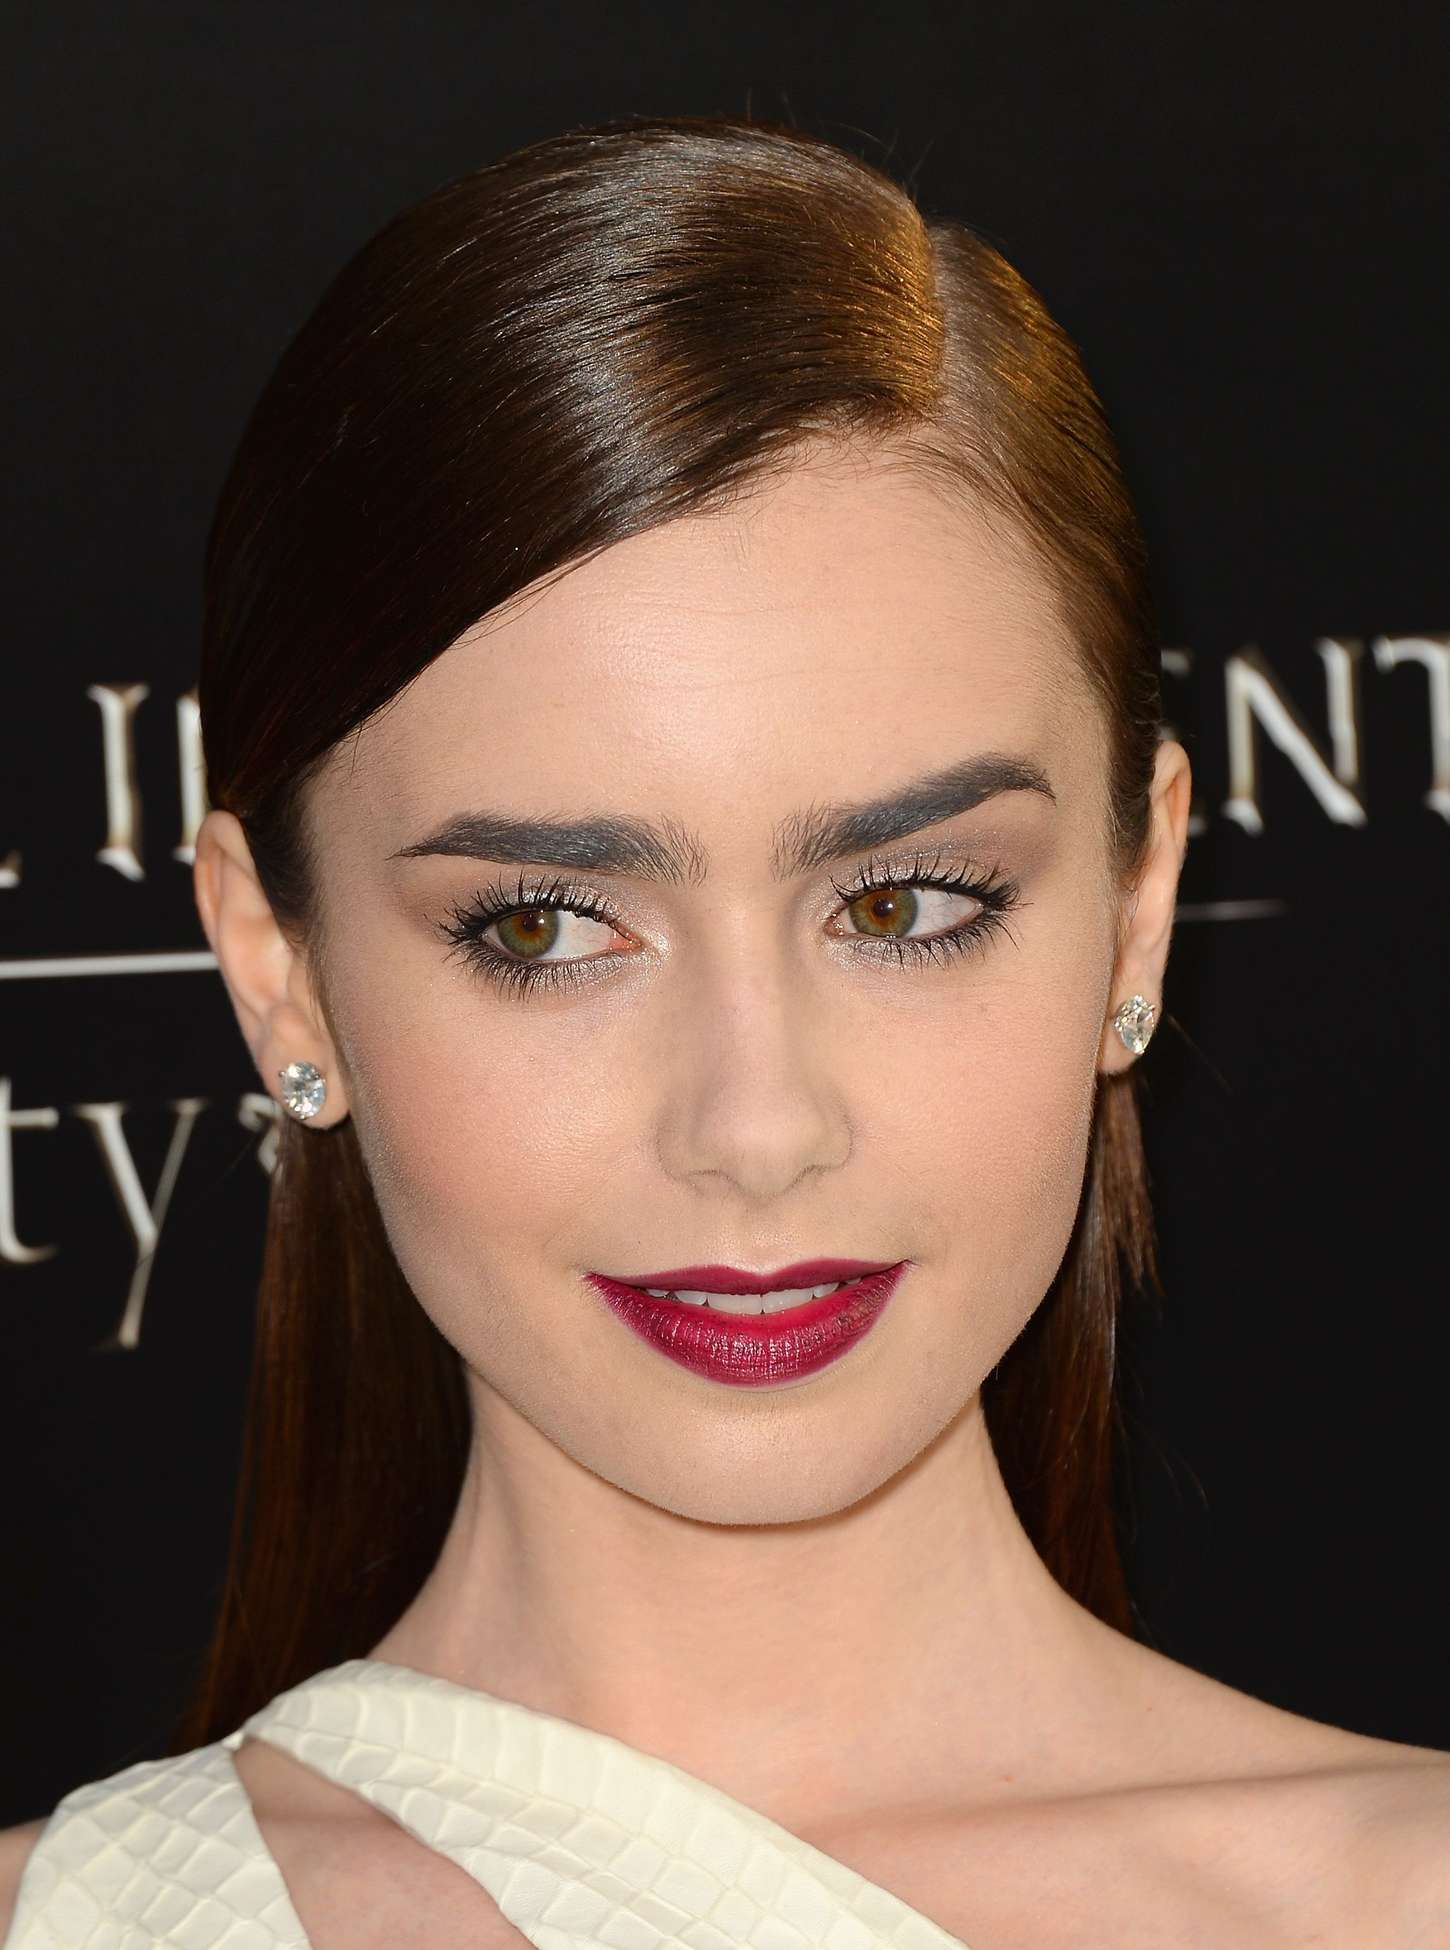 Lily Collins – The Mortal Instruments City Of Bones ...